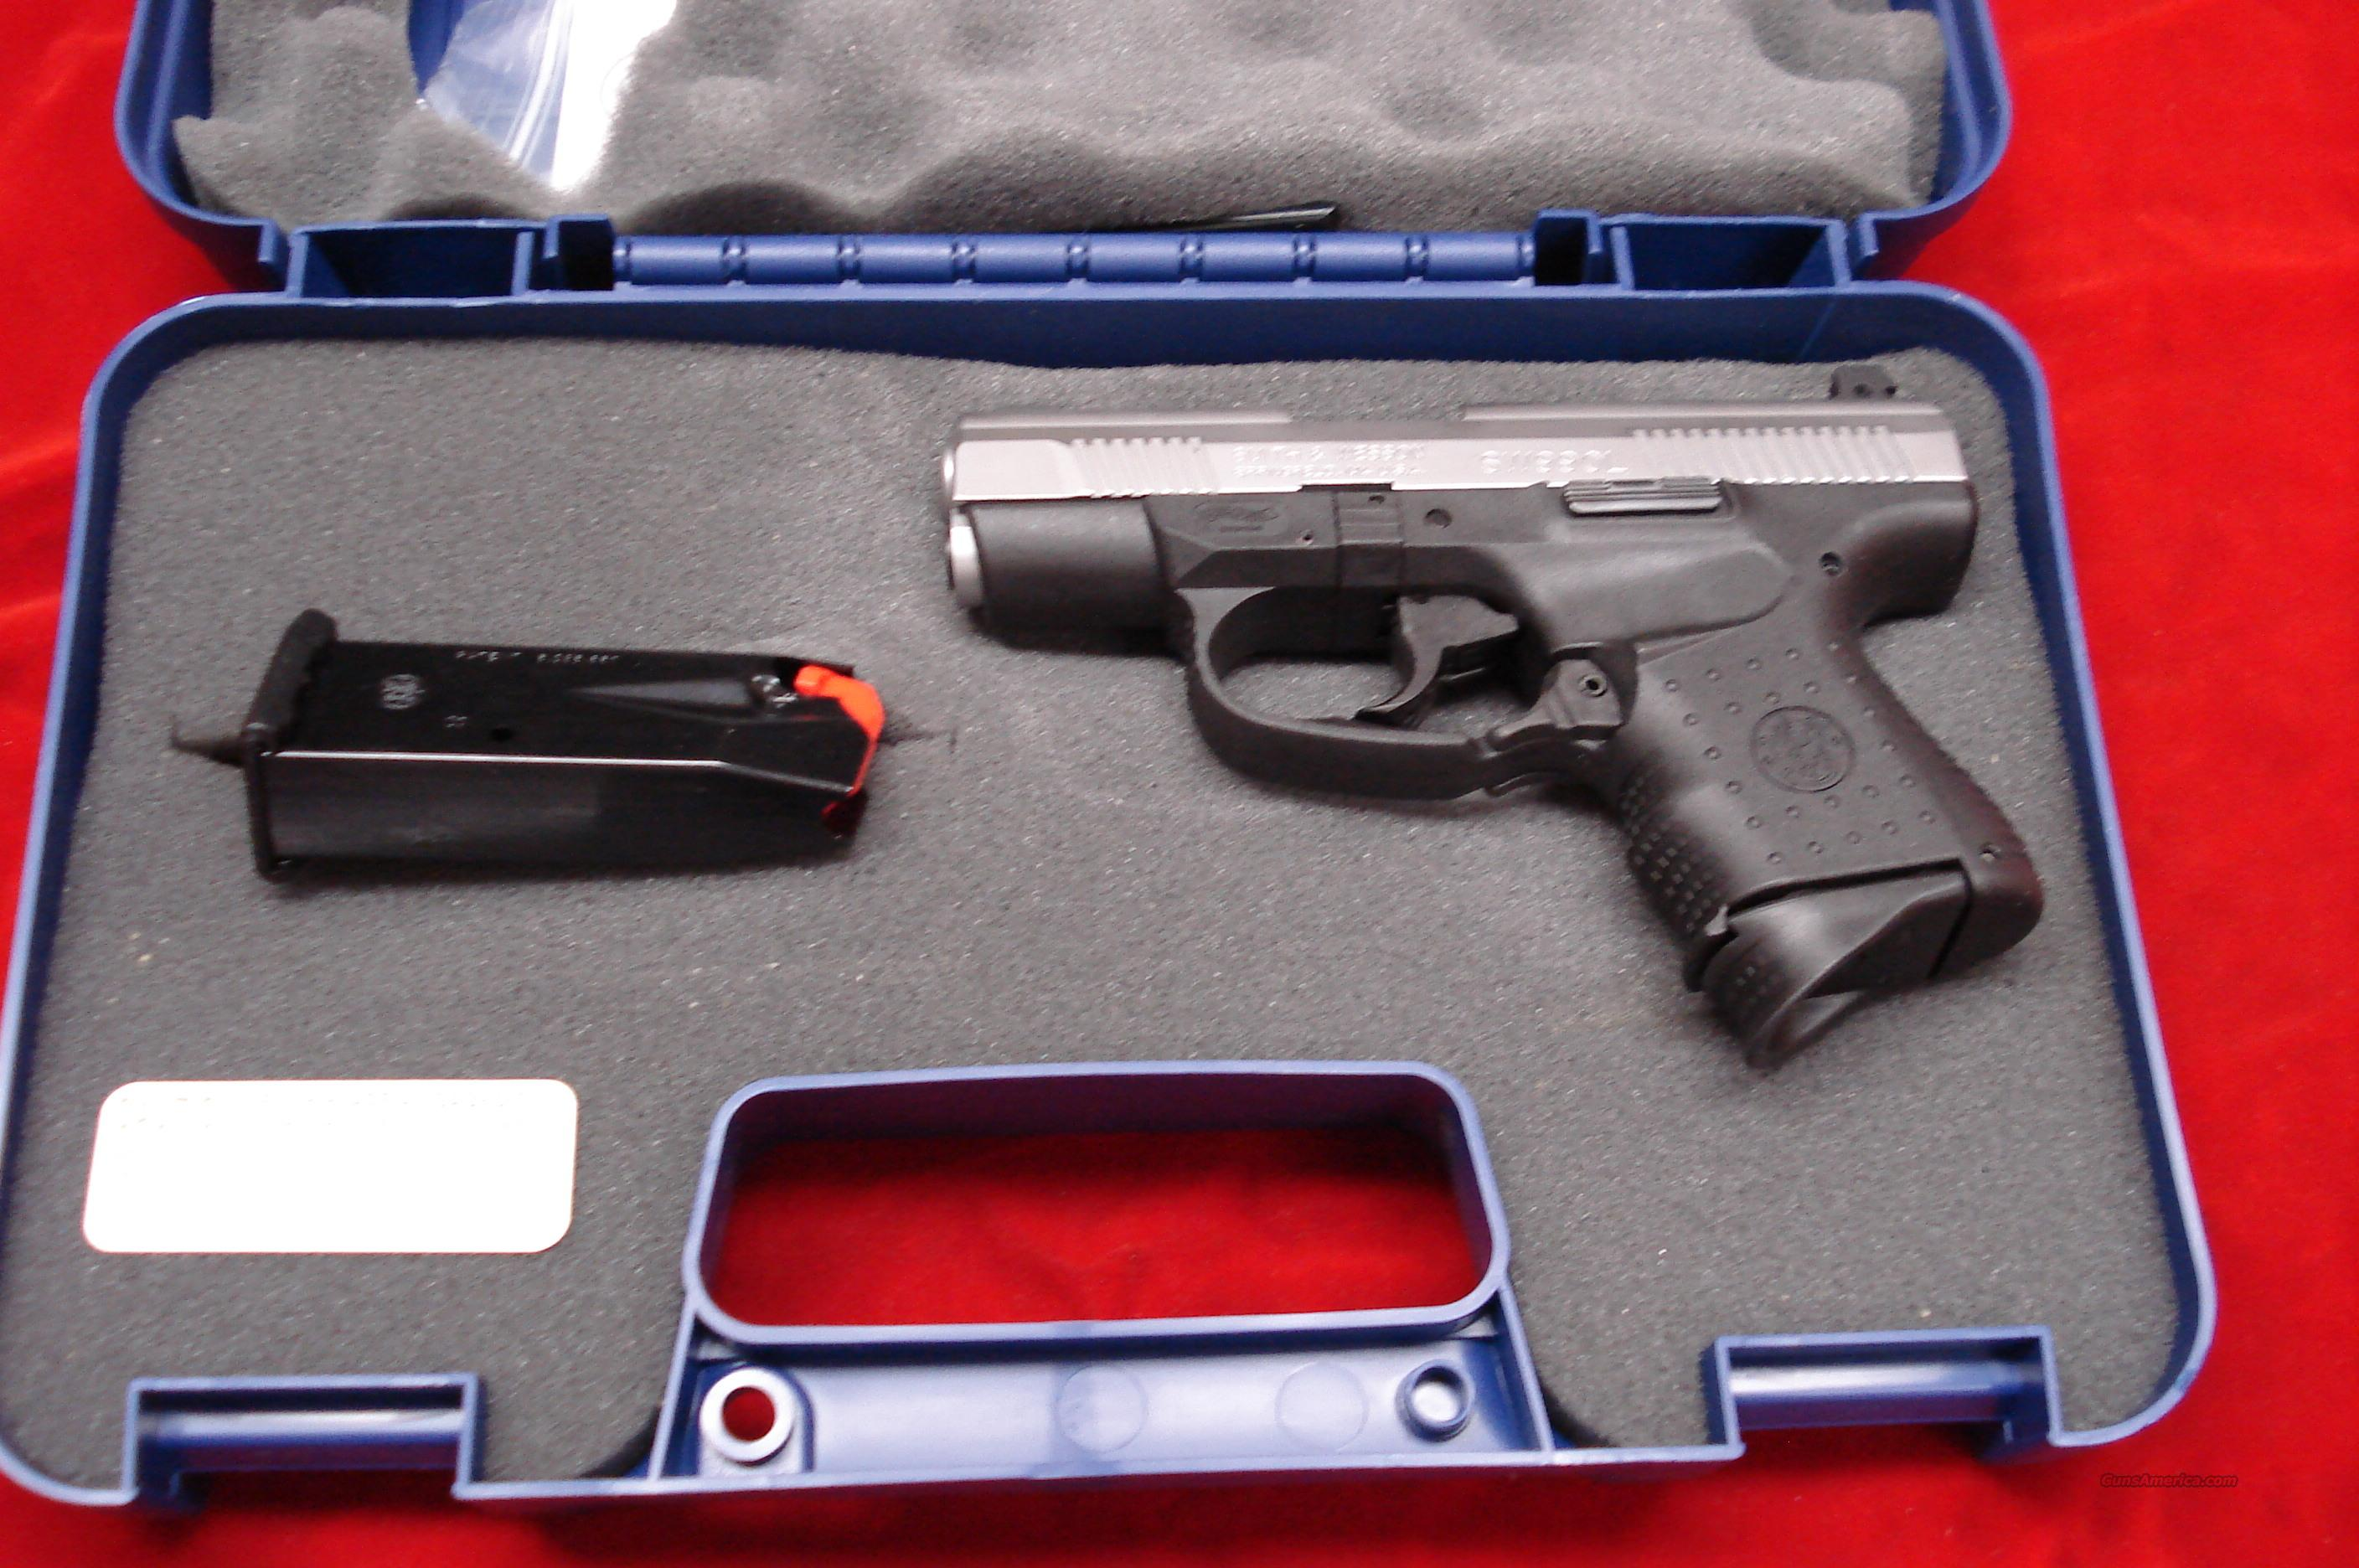 SMITH AND WESSON SW990L COMPACT .40 CAL. STAINLESS WITH NIGHT SIGHTS NEW   Guns > Pistols > Smith & Wesson Pistols - Autos > Polymer Frame